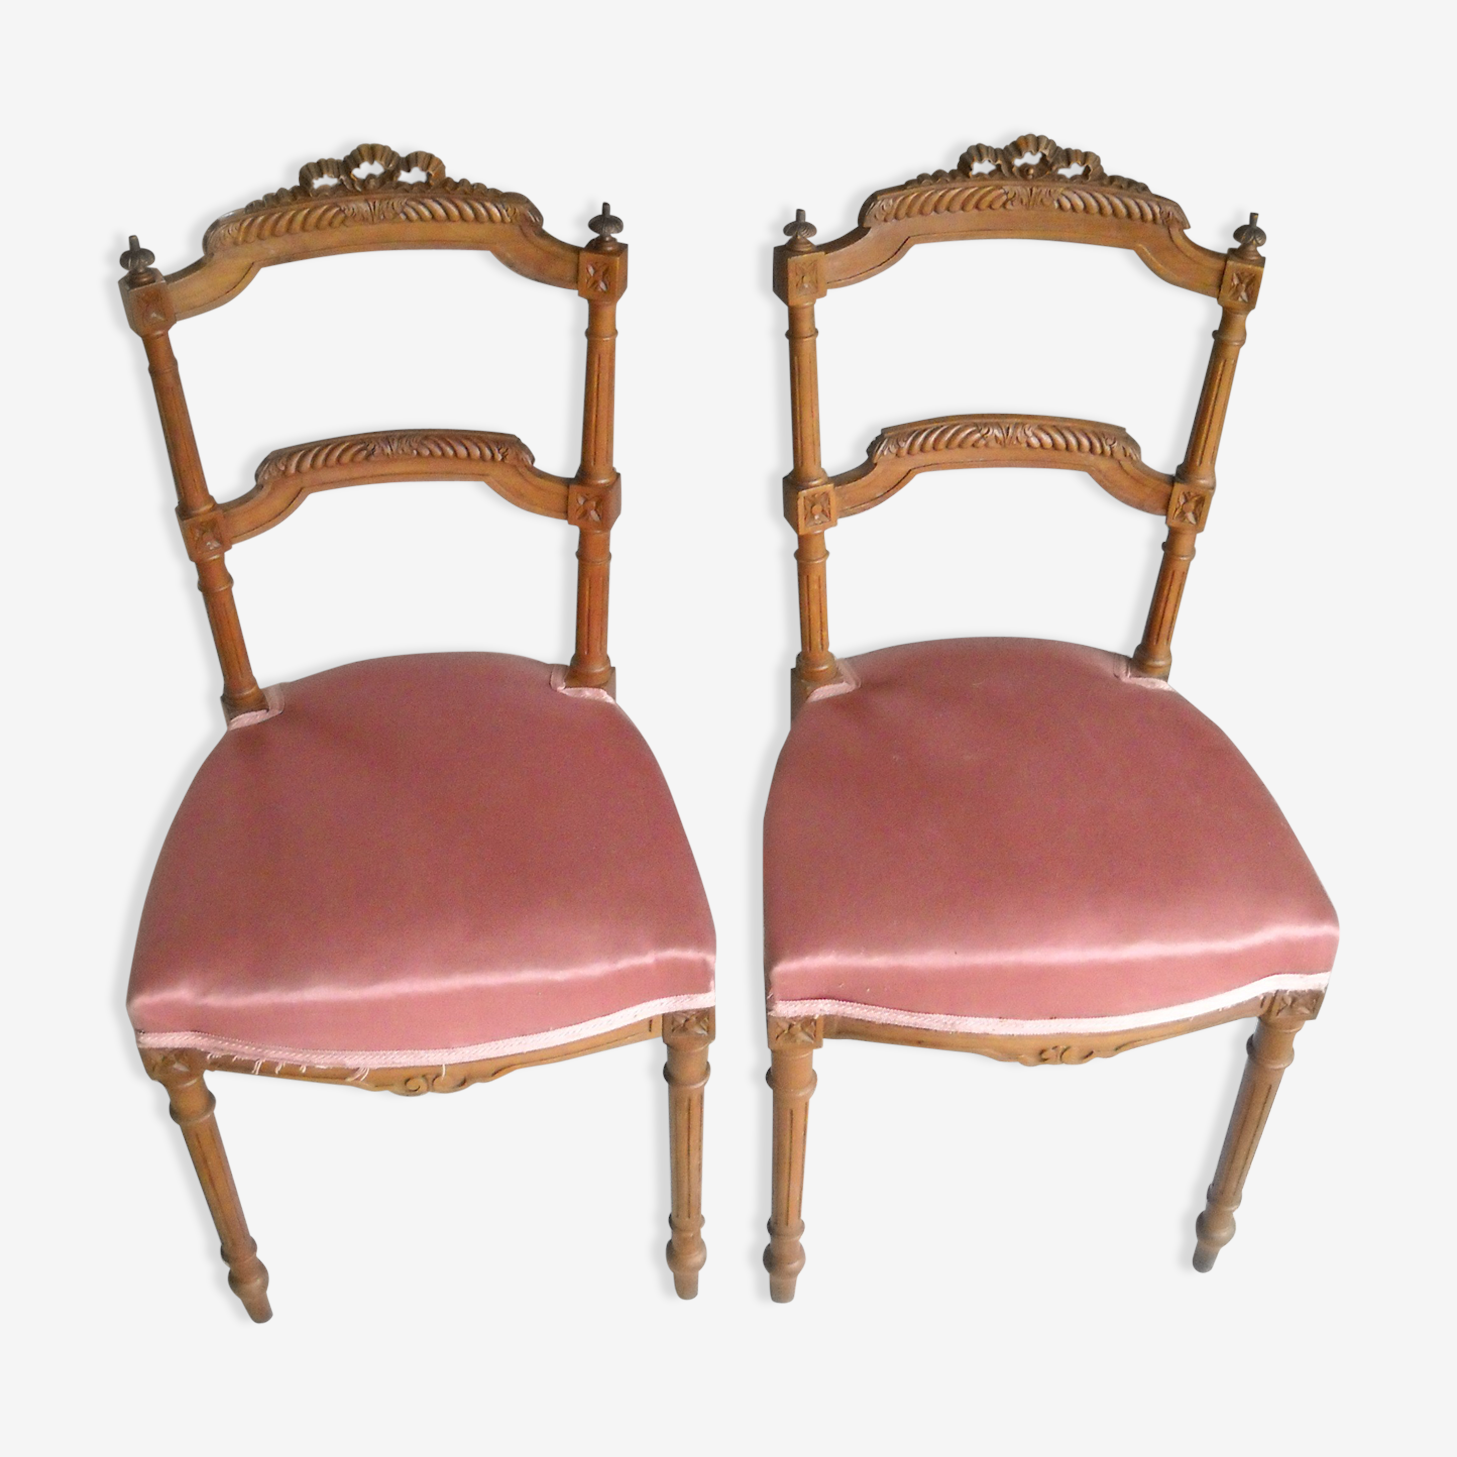 Lot chaises style louisXVI